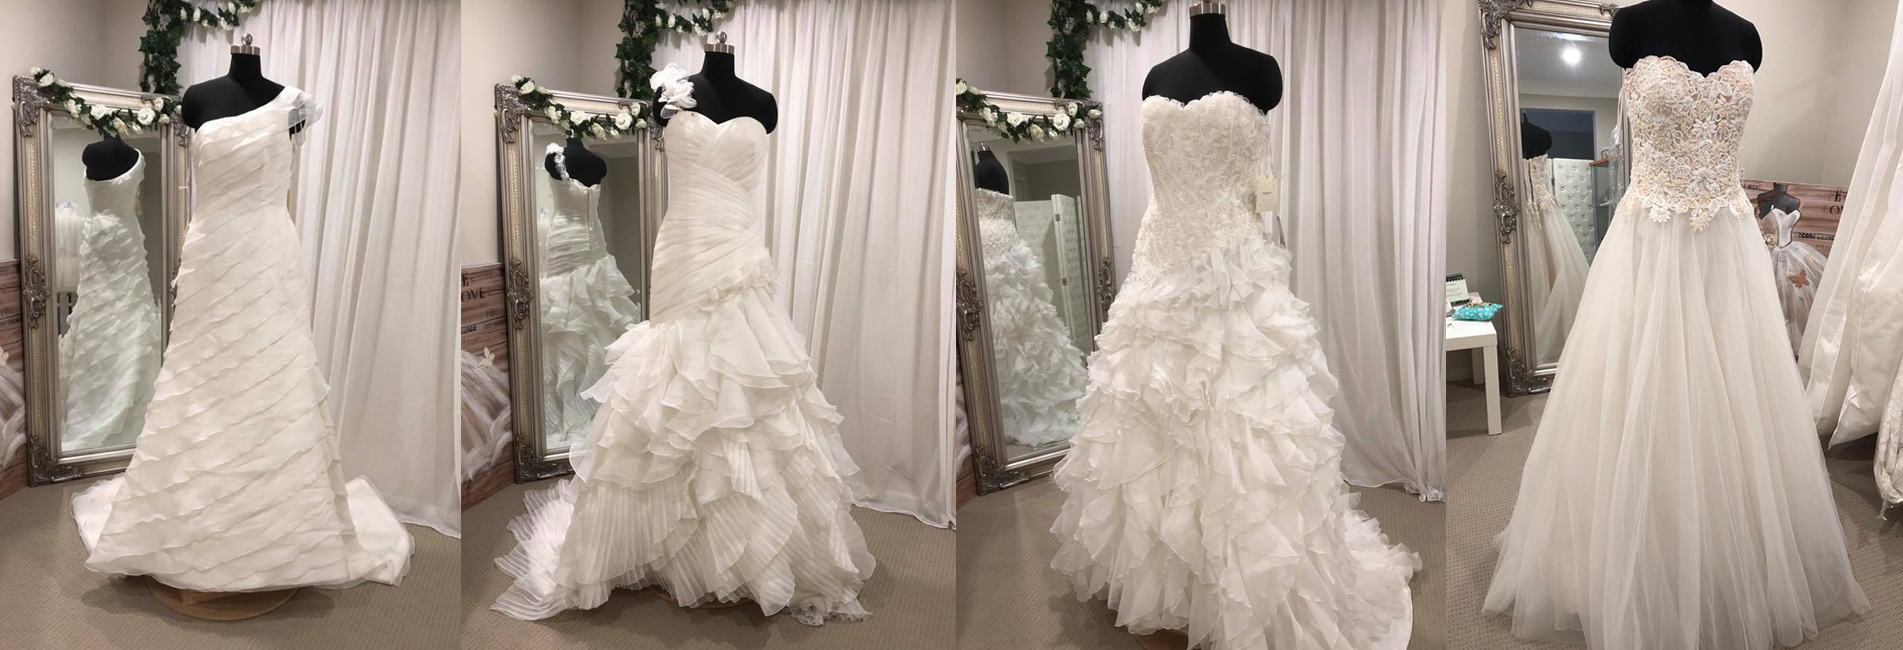 Plus Size Wedding Dresses Sydney, Clothing Alterations Parramatta, Wedding Dresses Blacktown, Bridal Veils Castle Hill, Second Hand Wedding Dresses Doonside, Wedding Dress Alterations Seven Hills